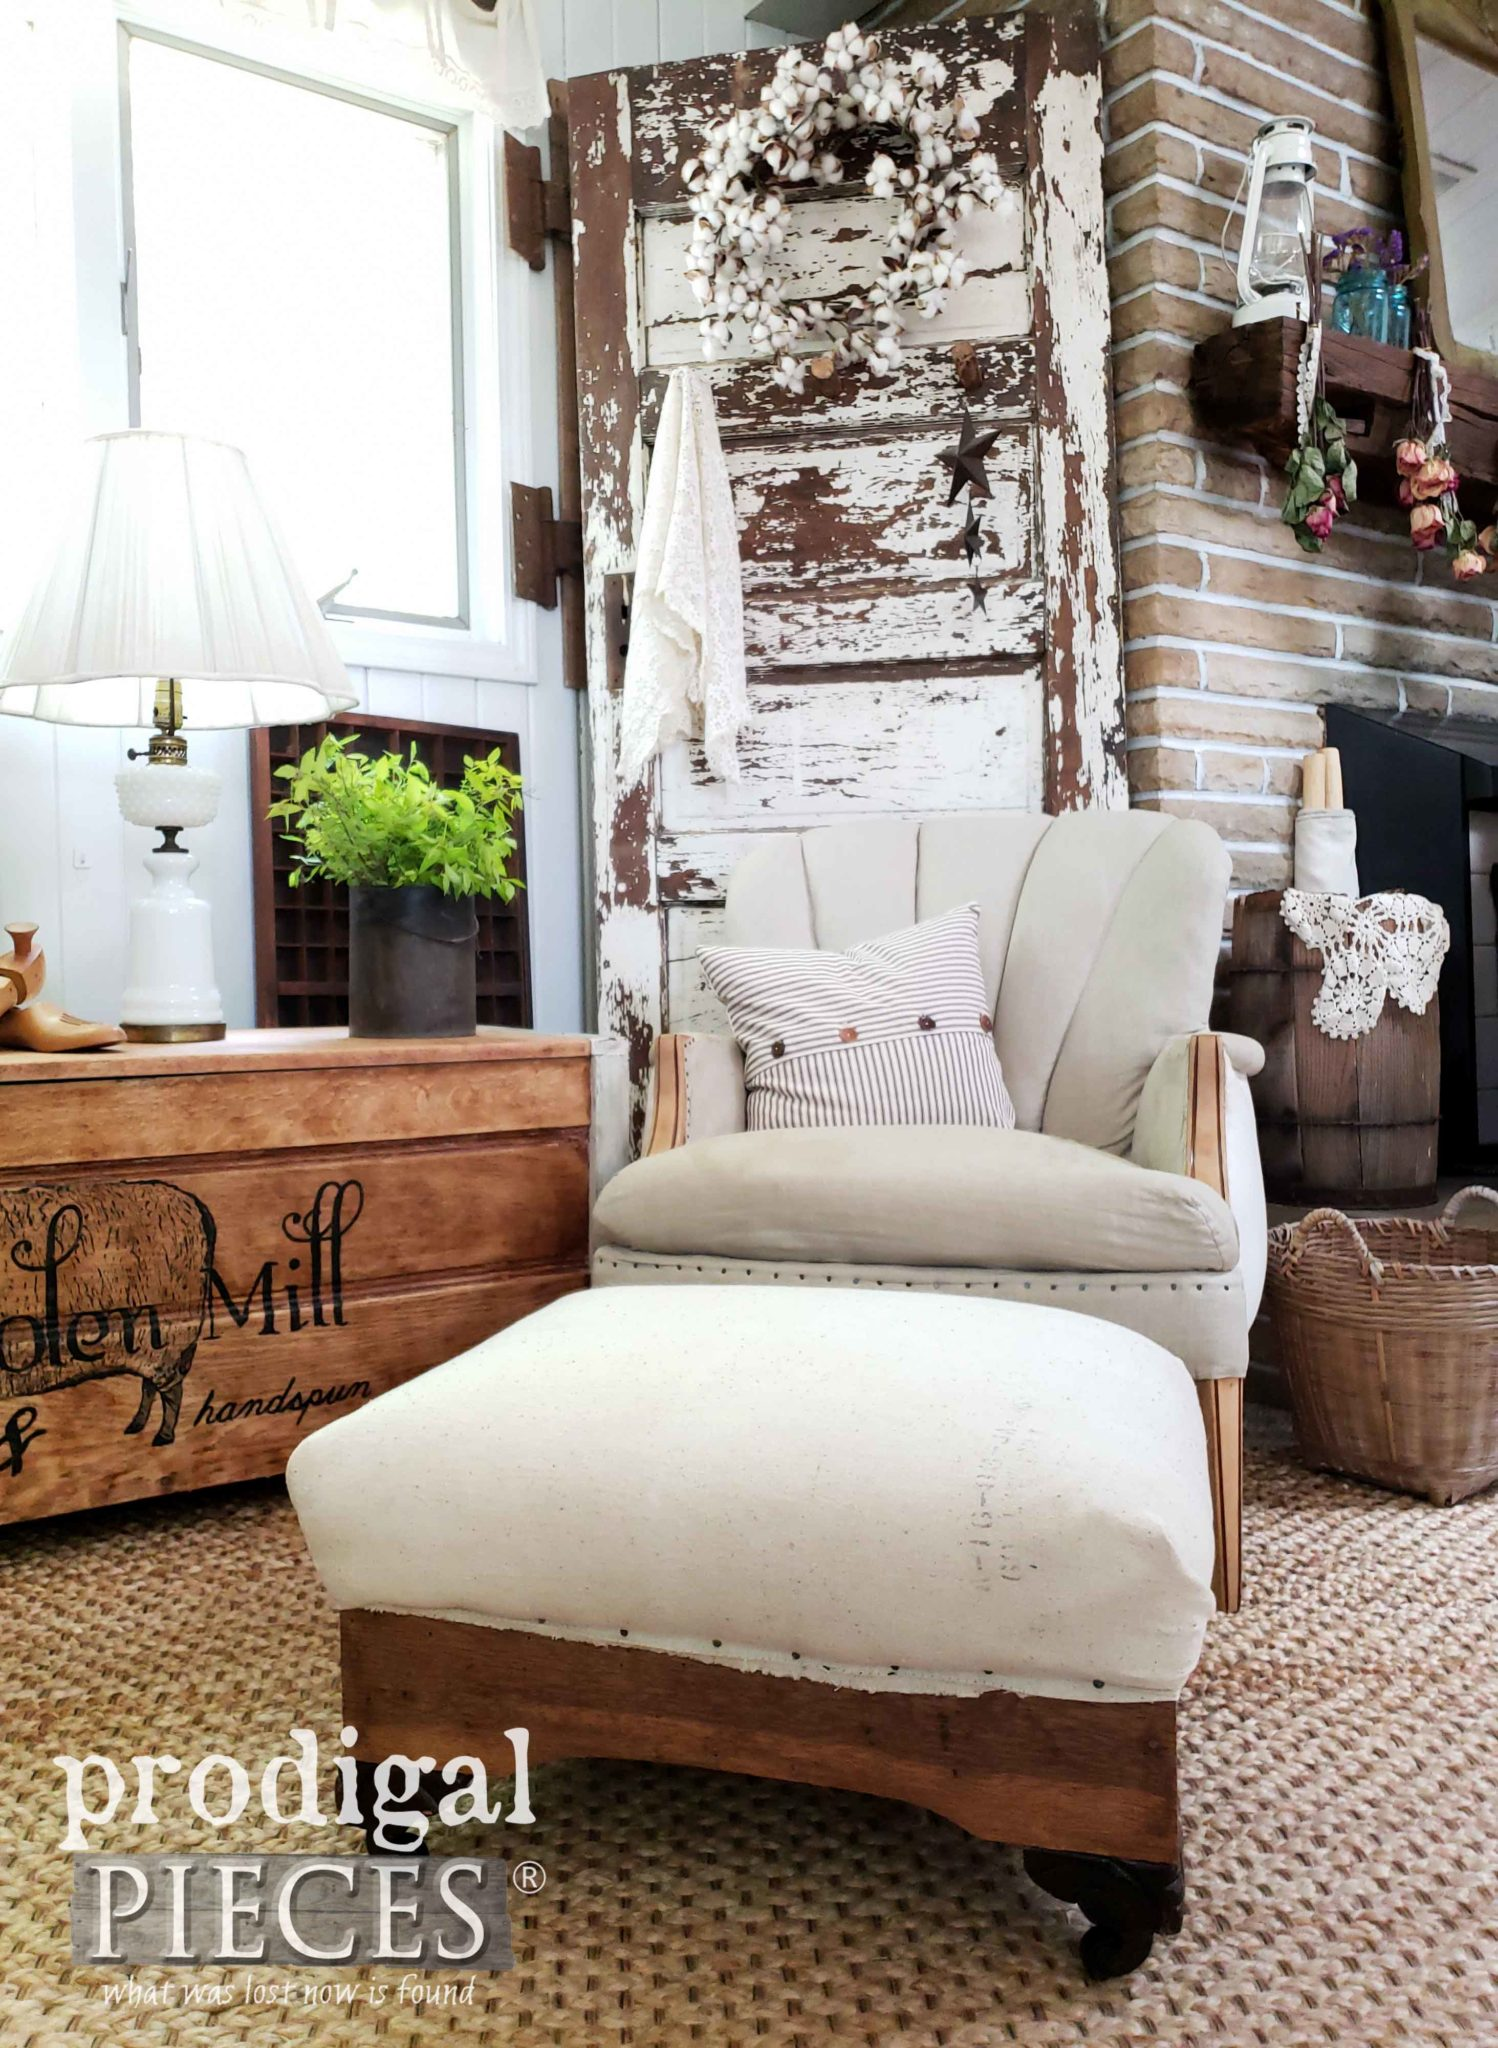 Rustic Farmhouse Feed Sack Ottoman in Deconstructed Style by Larissa of Prodigal Pieces | prodigalpieces.com